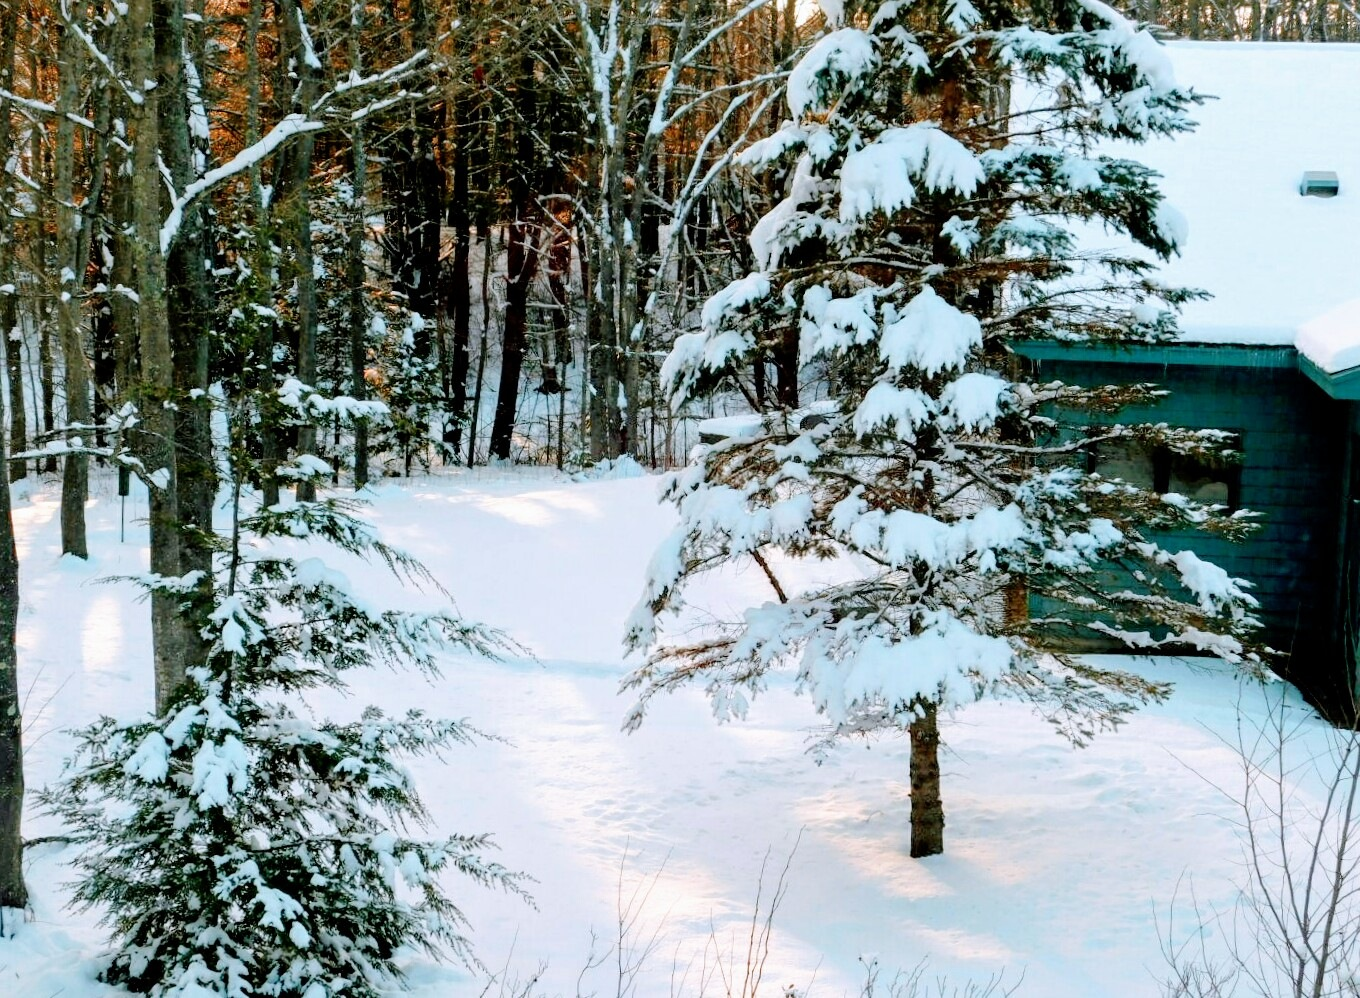 Sun Sets Upon the Snow by Stacey J. Cunningham